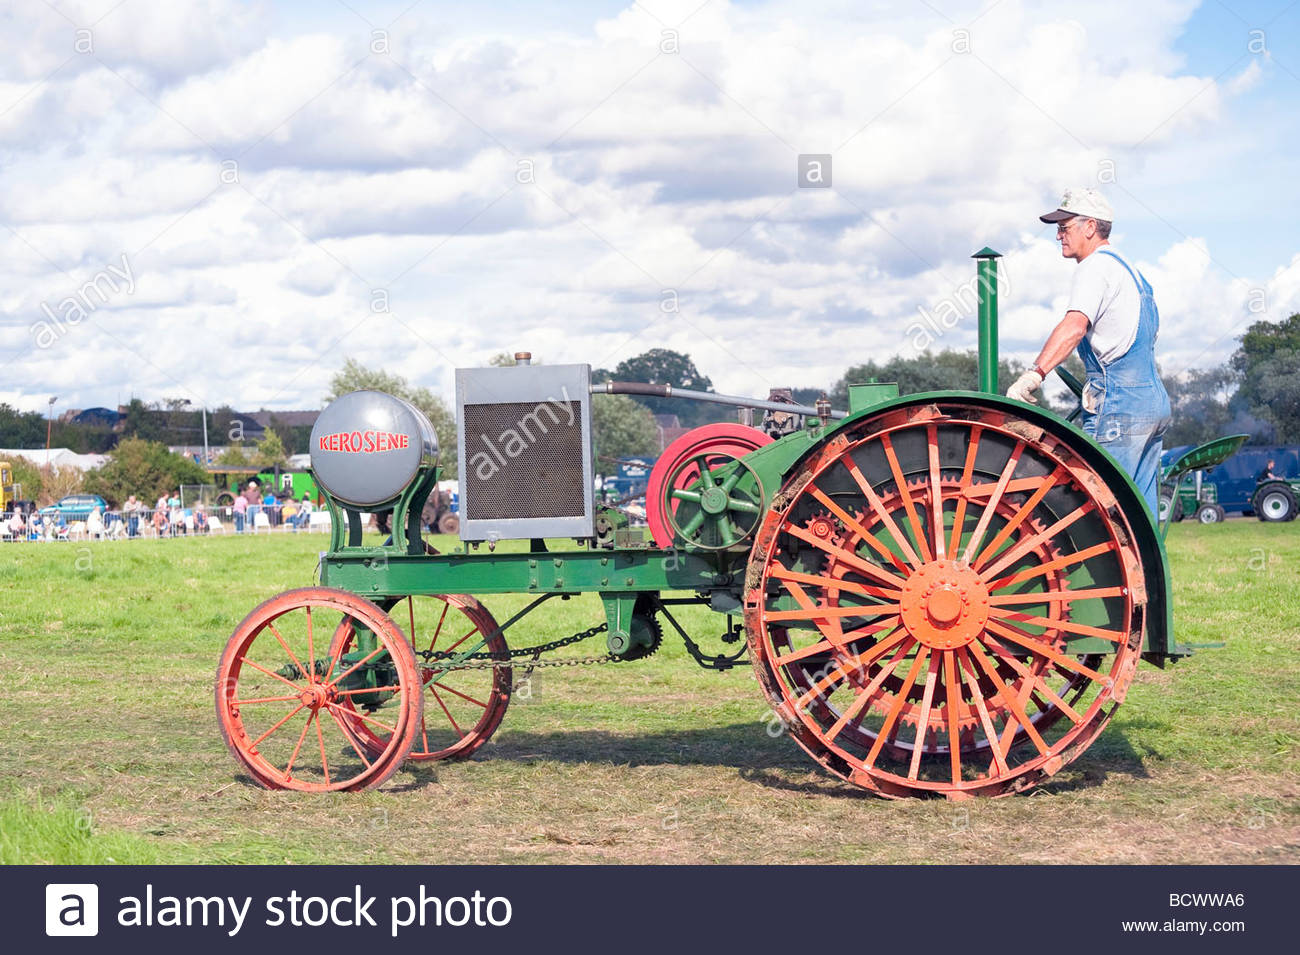 Vintage tractor at Welland Steam Rally, UK. misc classic tractor. Parade in show ring. - Stock Image